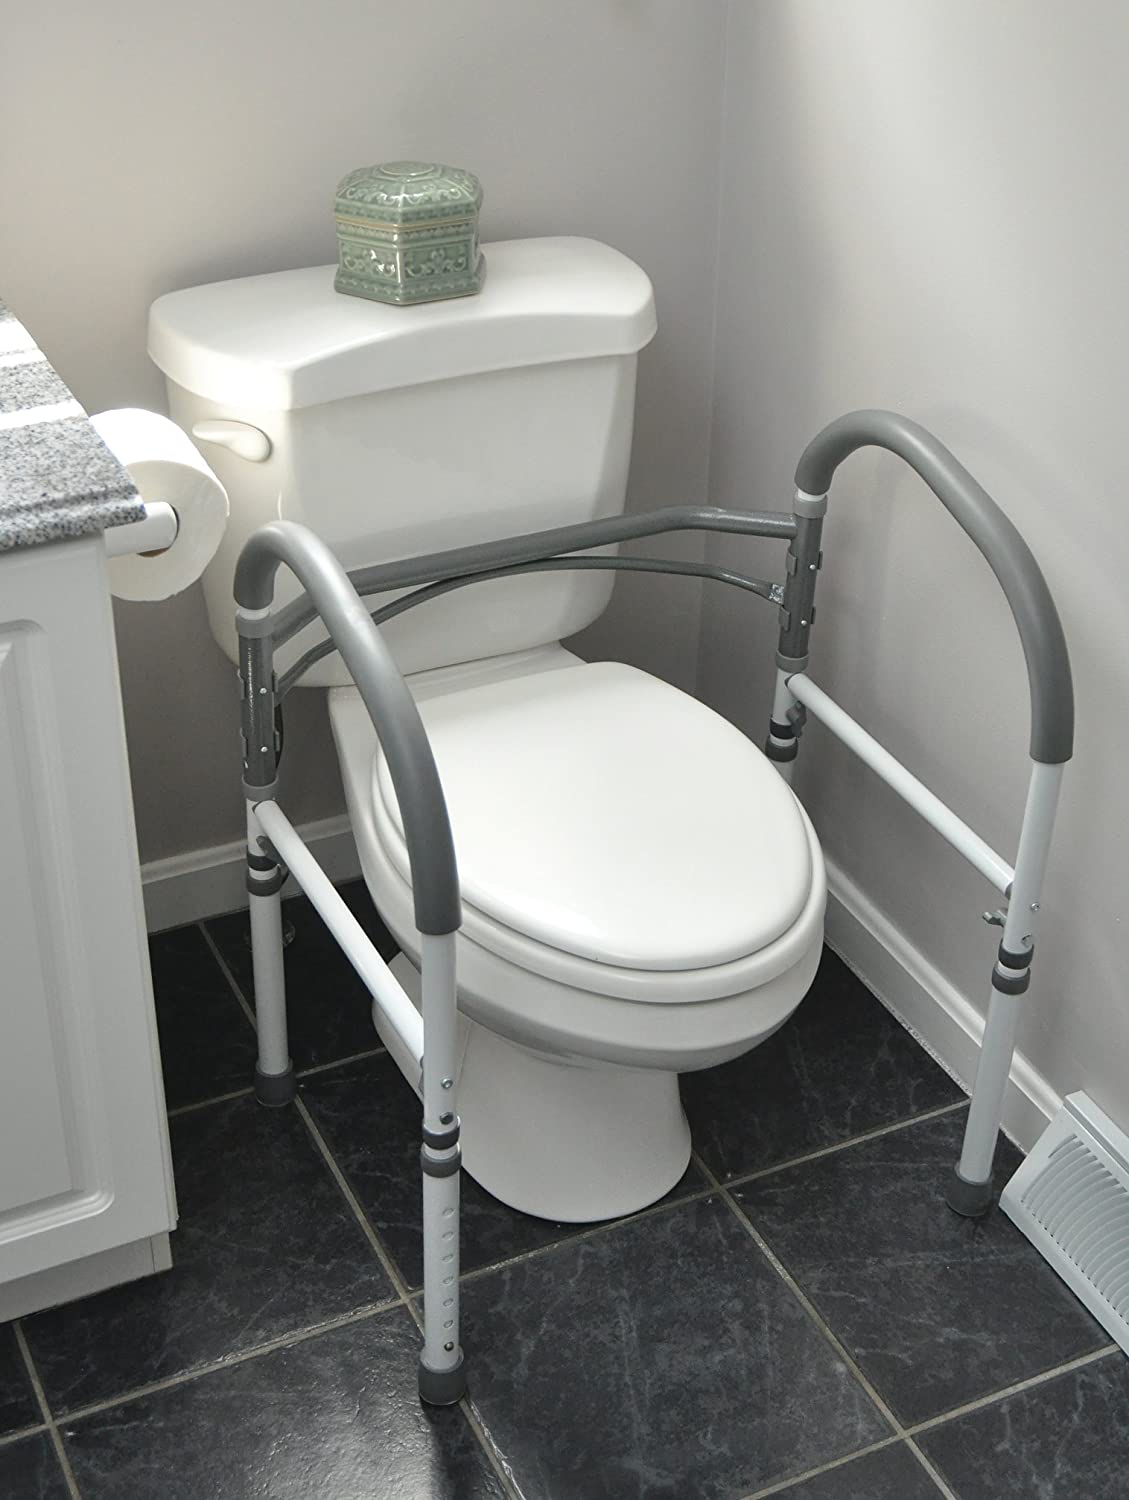 Amazon.com: Carex Health Brands Bathroom Safety Rail: Health ...